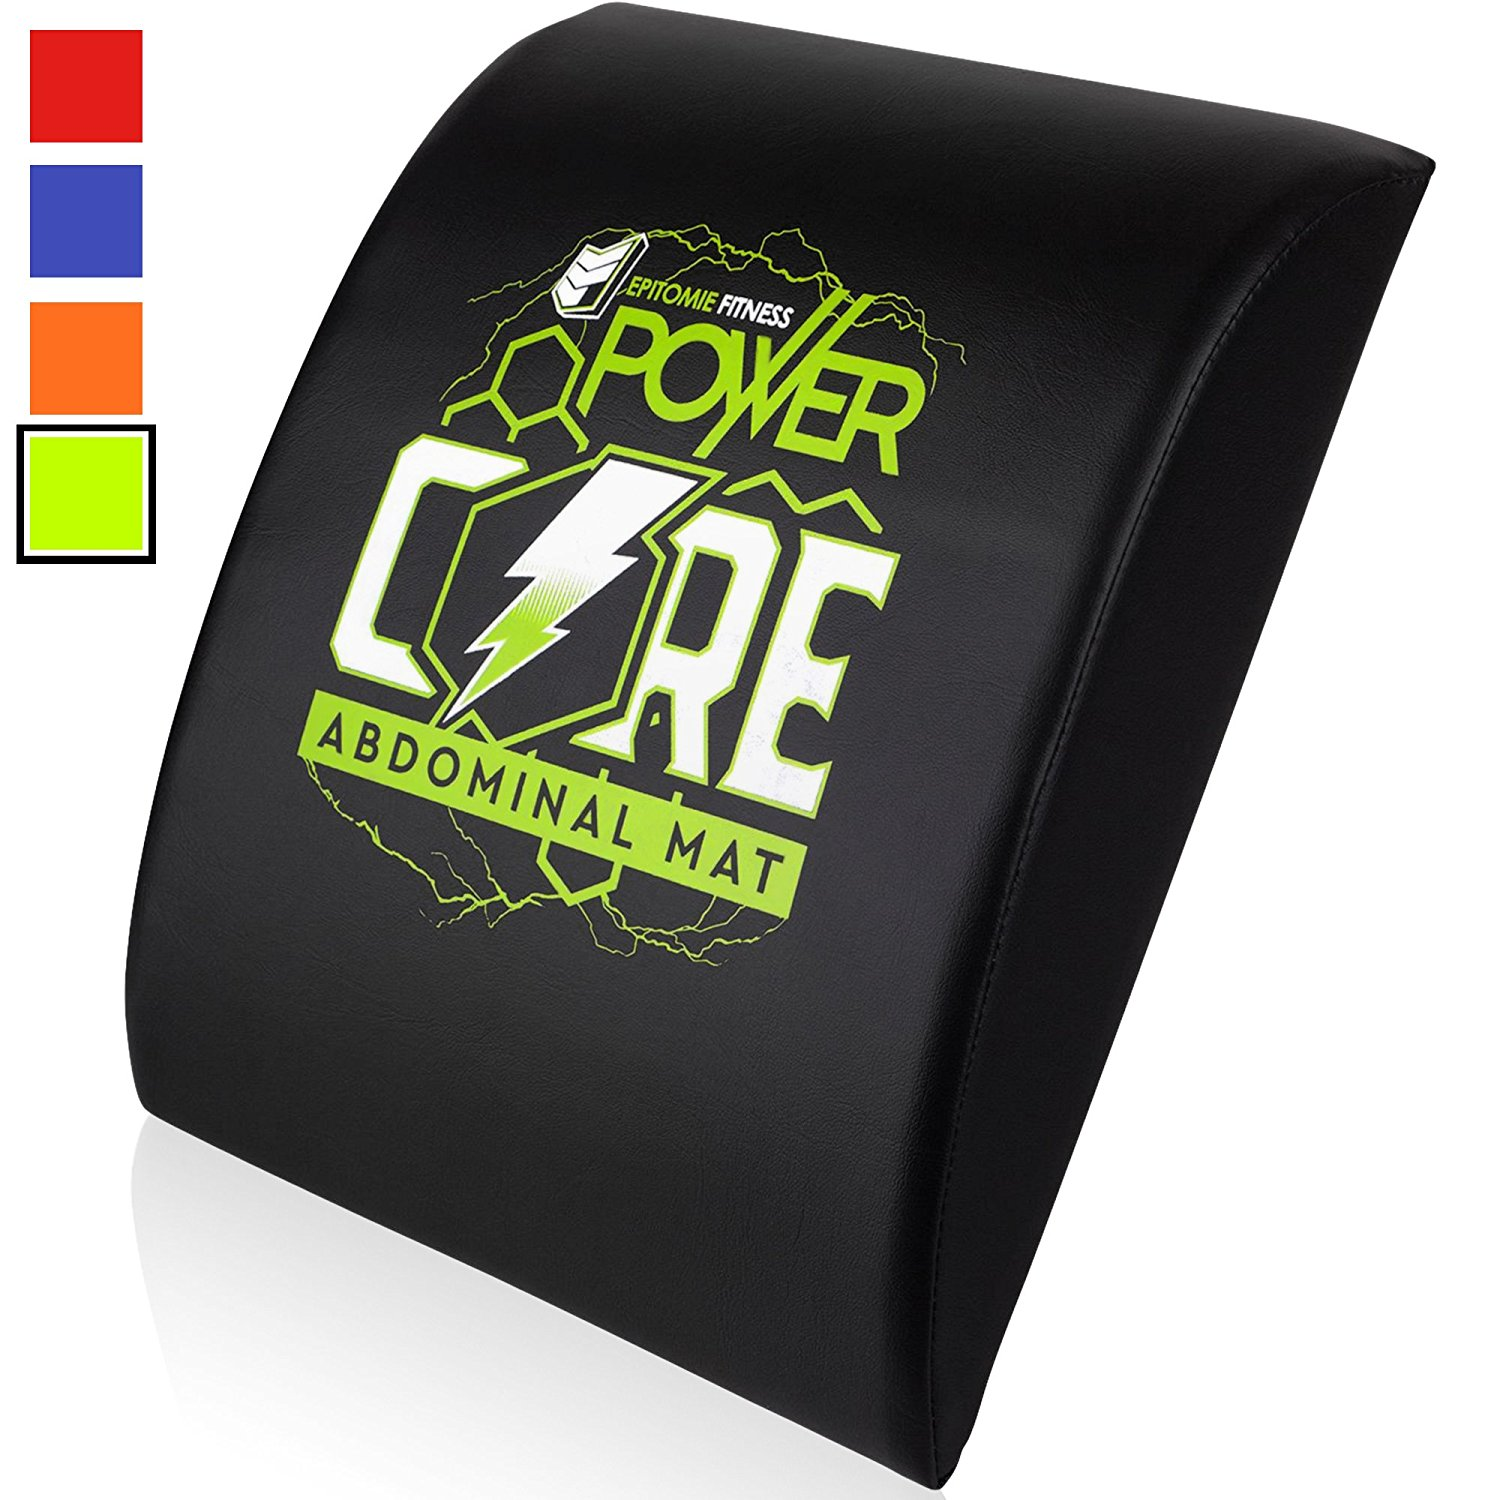 Epitomie Fitness Power Core Ab Exercise Mat